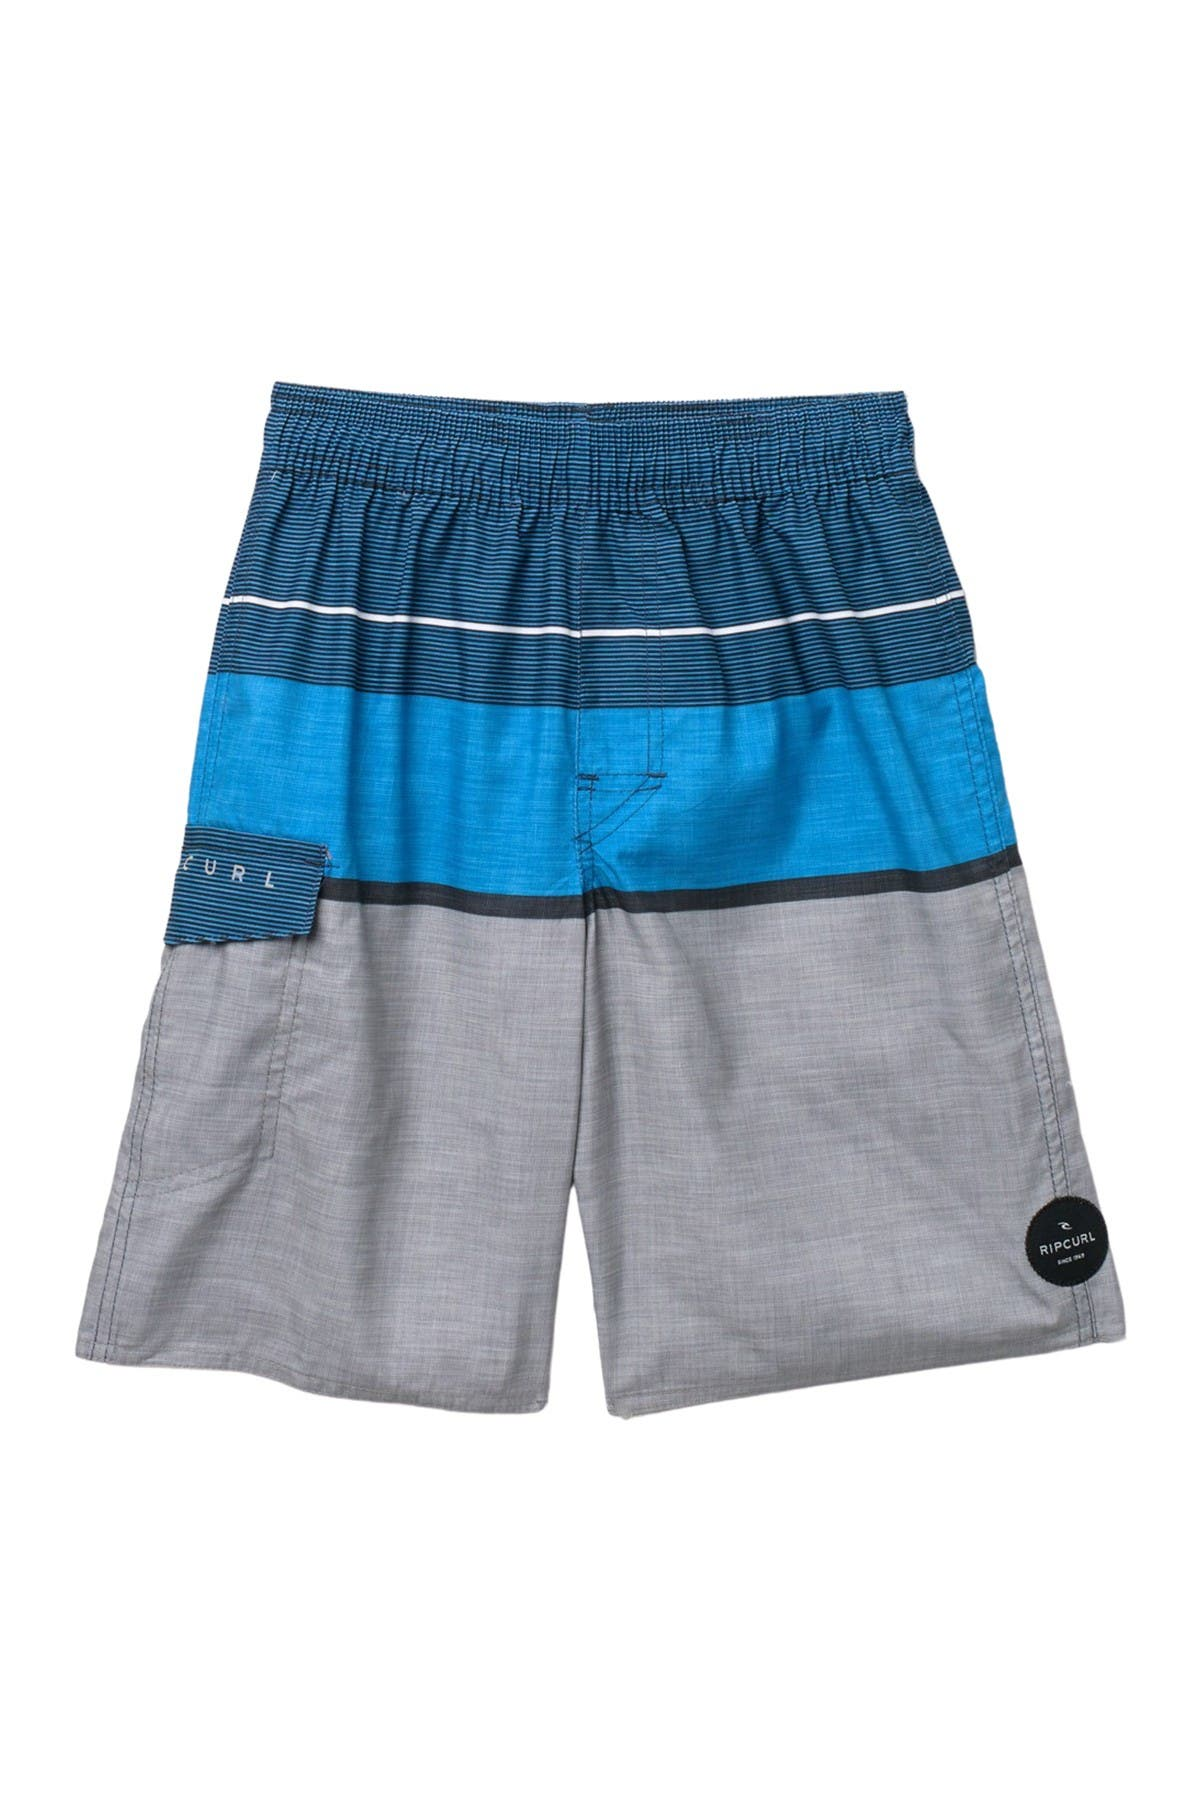 Image of Rip Curl Focus Volley Board Shorts